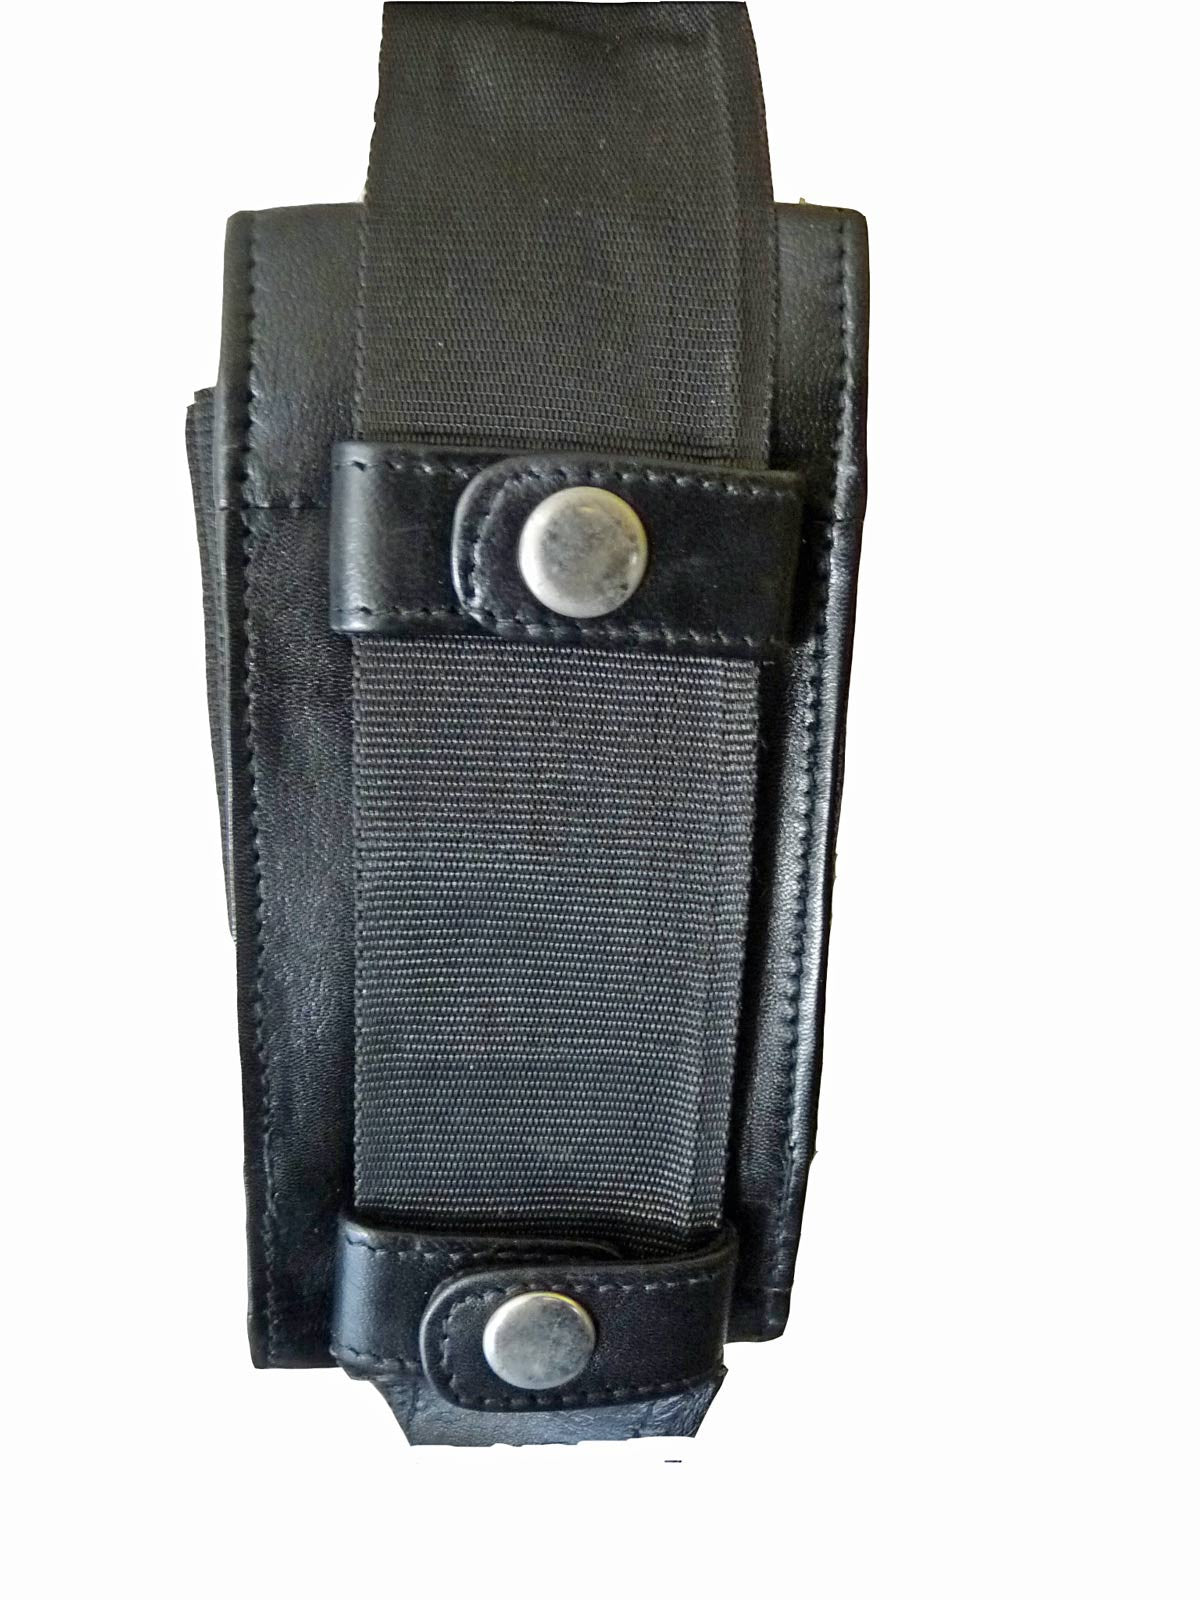 Shoulder Under Arm Holster Travel Bag Black RL705 POCKET VIEW 2